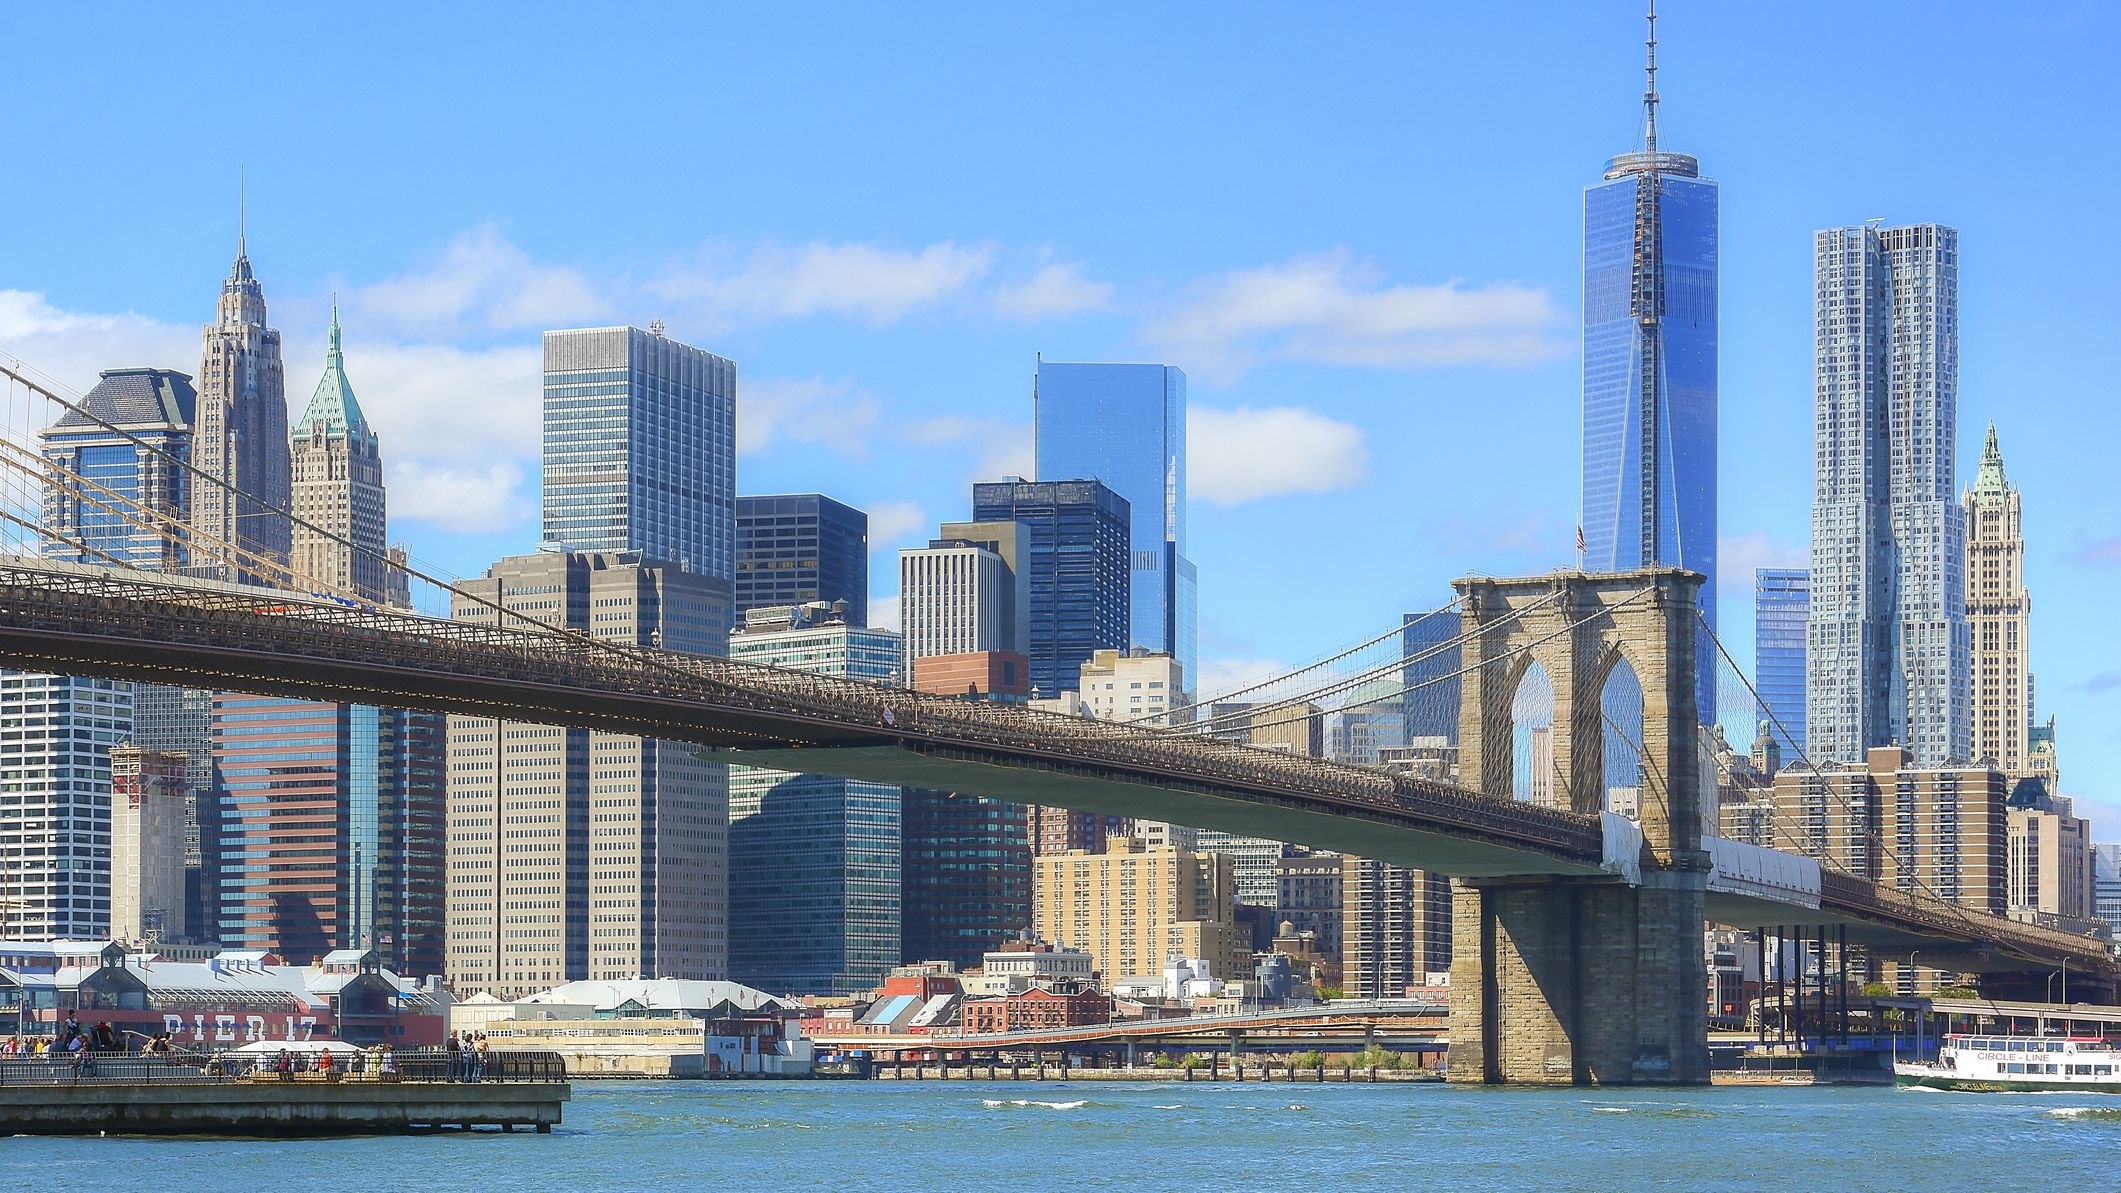 The Coolest Bridges In New York City